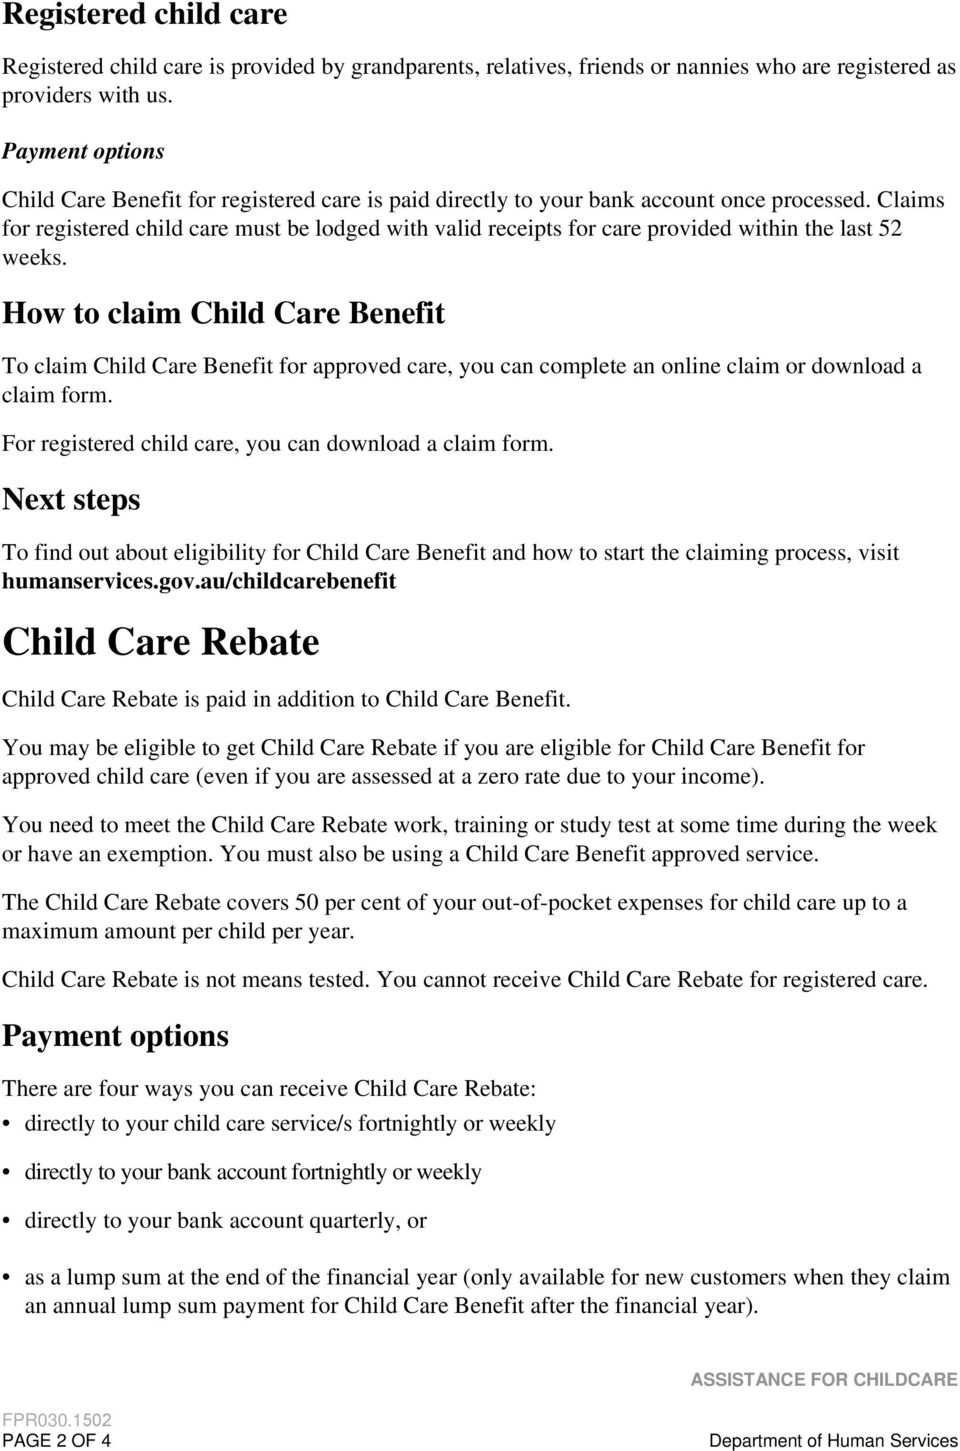 Claims for registered child care must be lodged with valid receipts for care provided within the last 52 weeks.